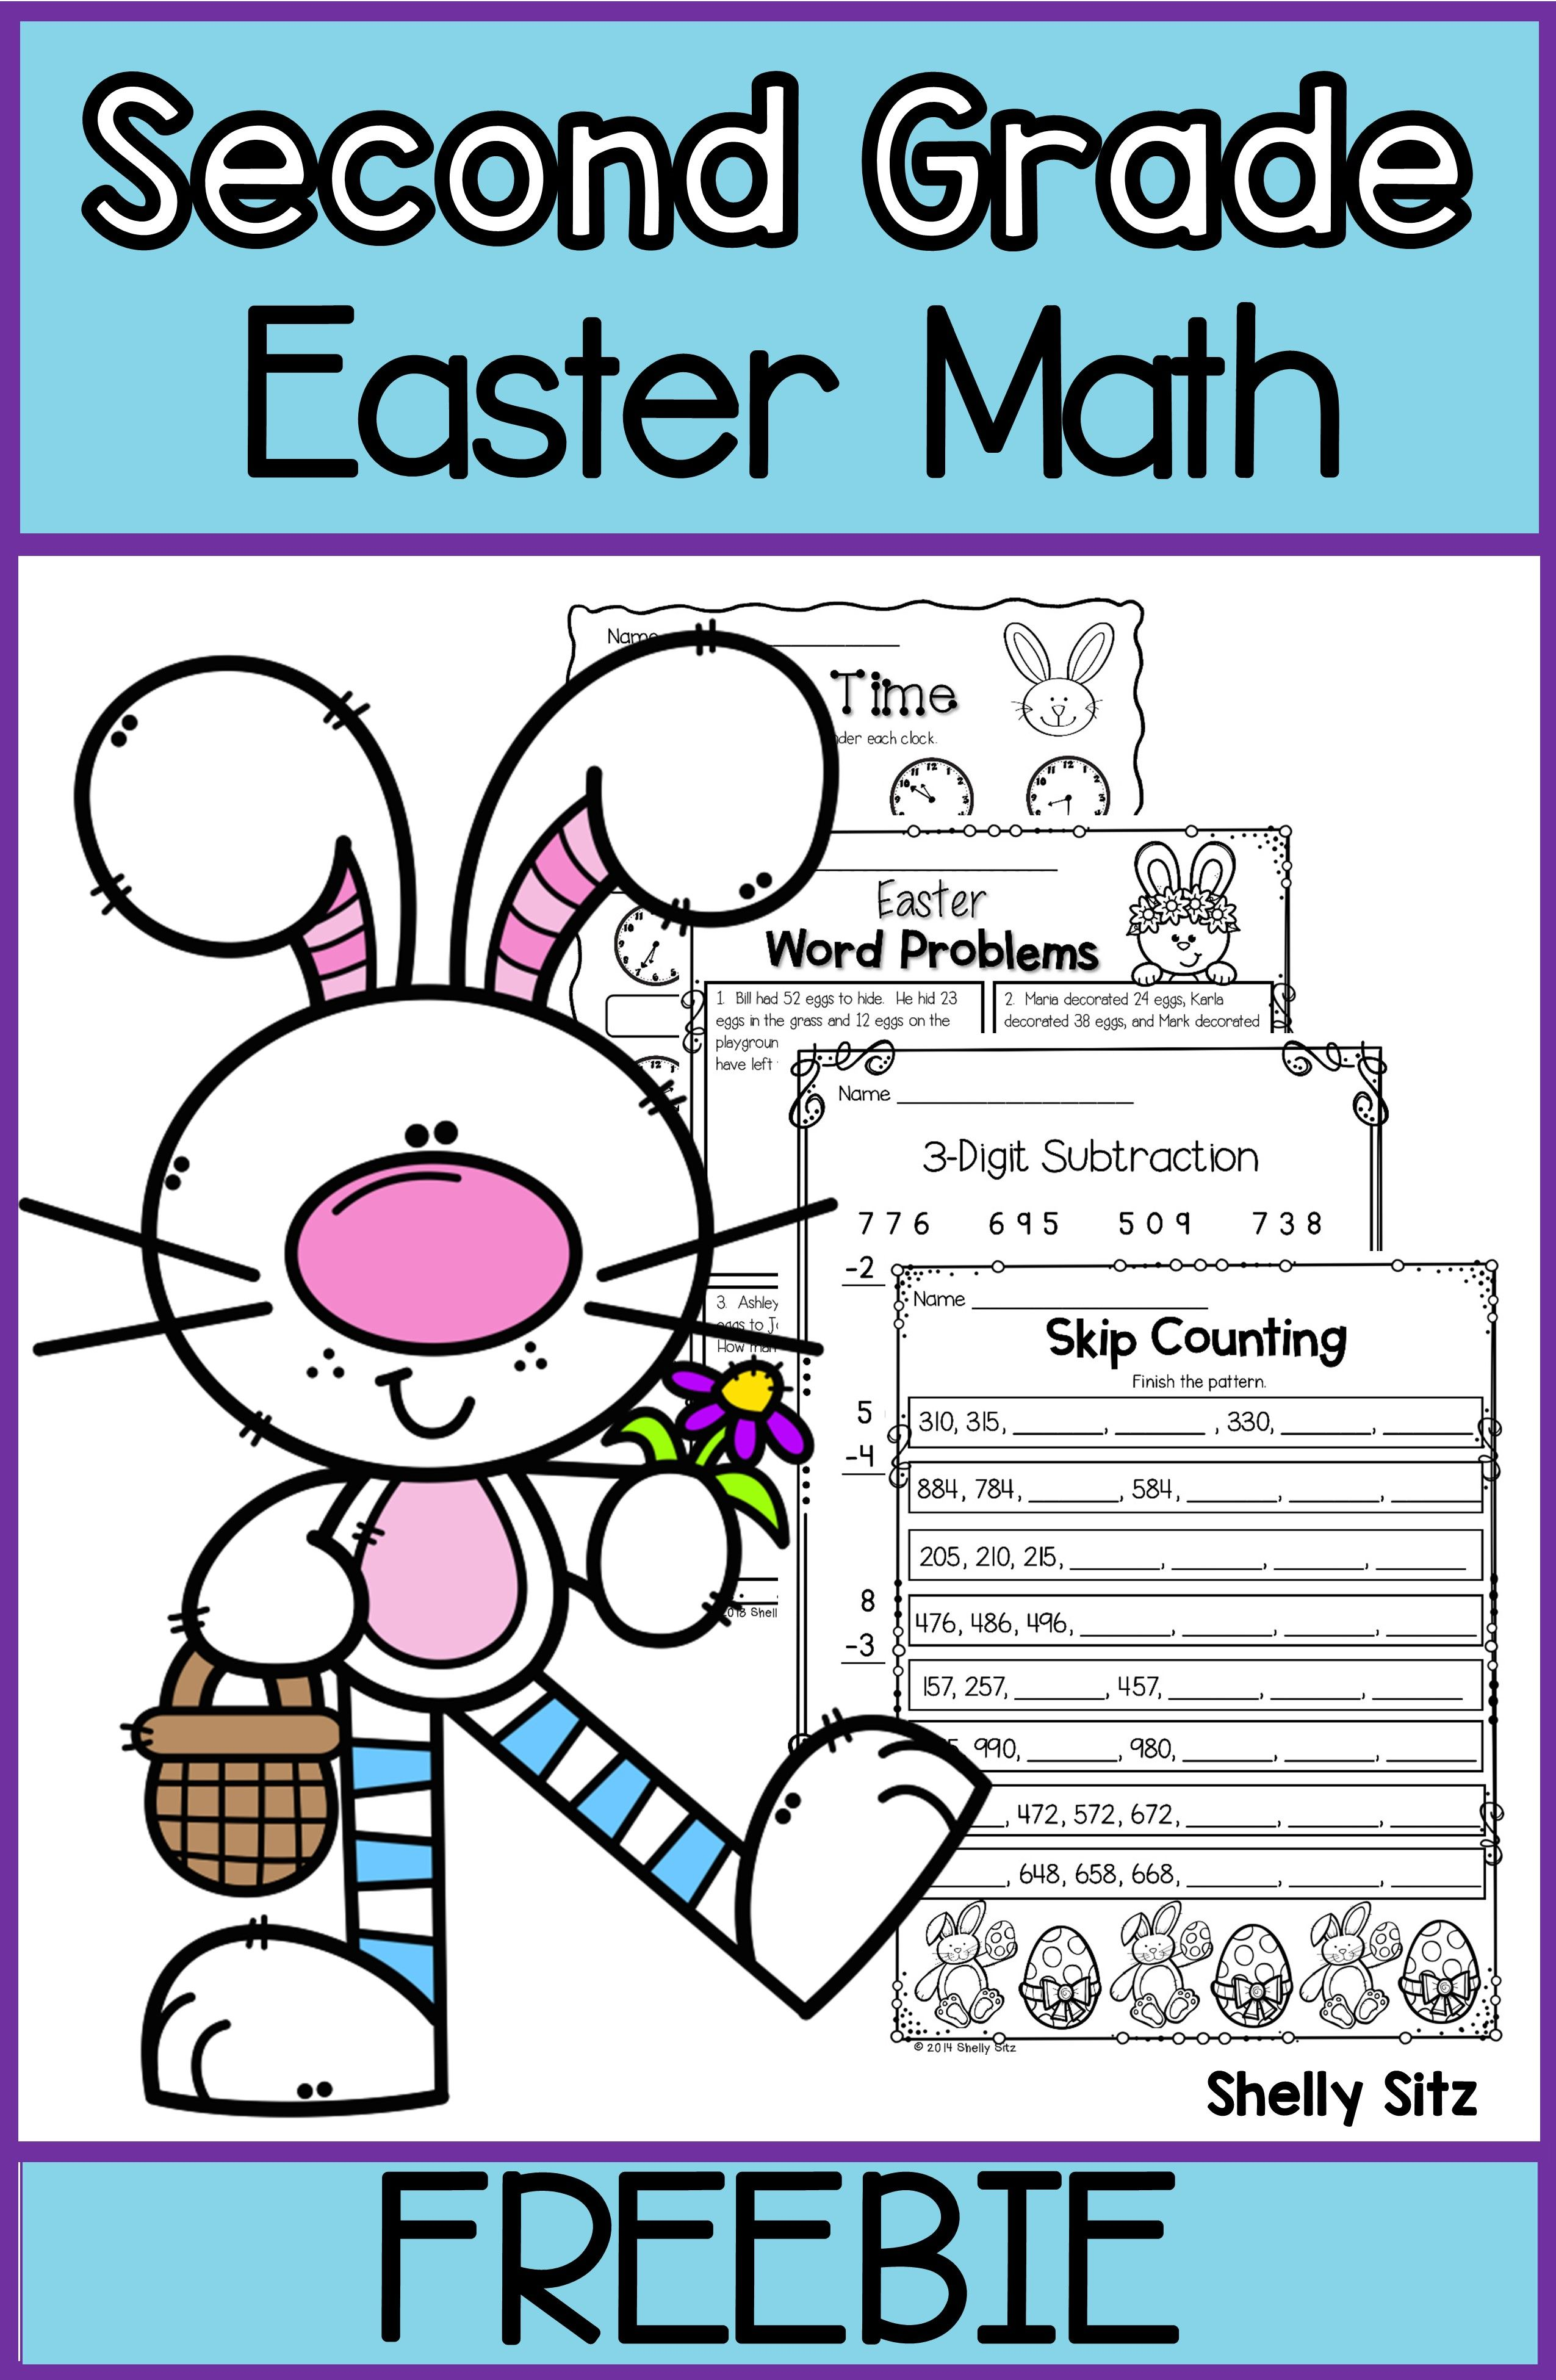 small resolution of Easter Math for Second Grade   Easter math